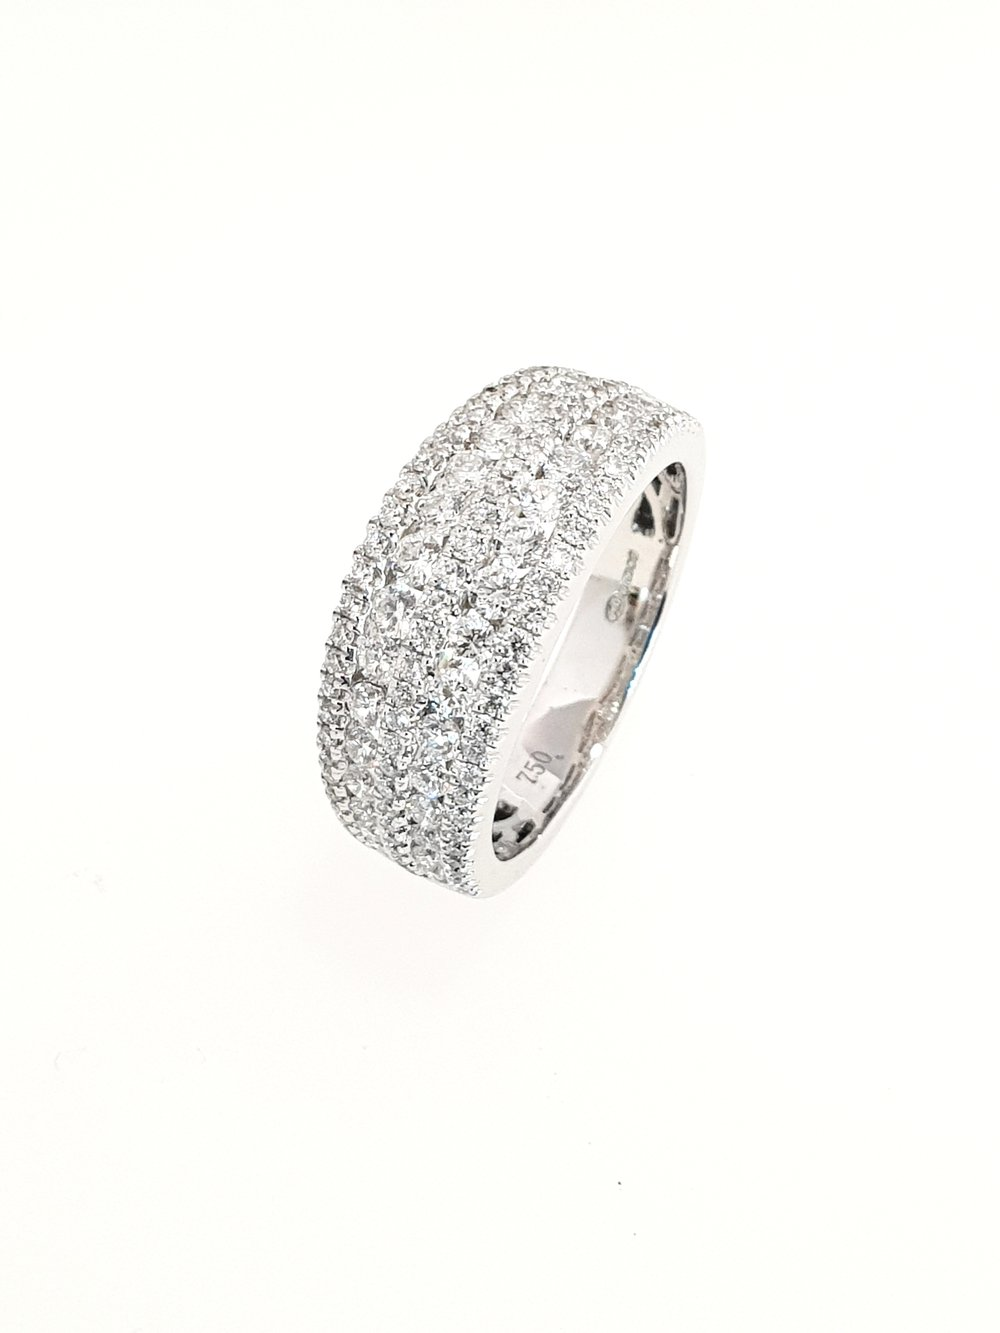 18ct White Gold 5 Row Diamond Ring  1.27ct, G, SI1  Stock Code: N8905  £4300